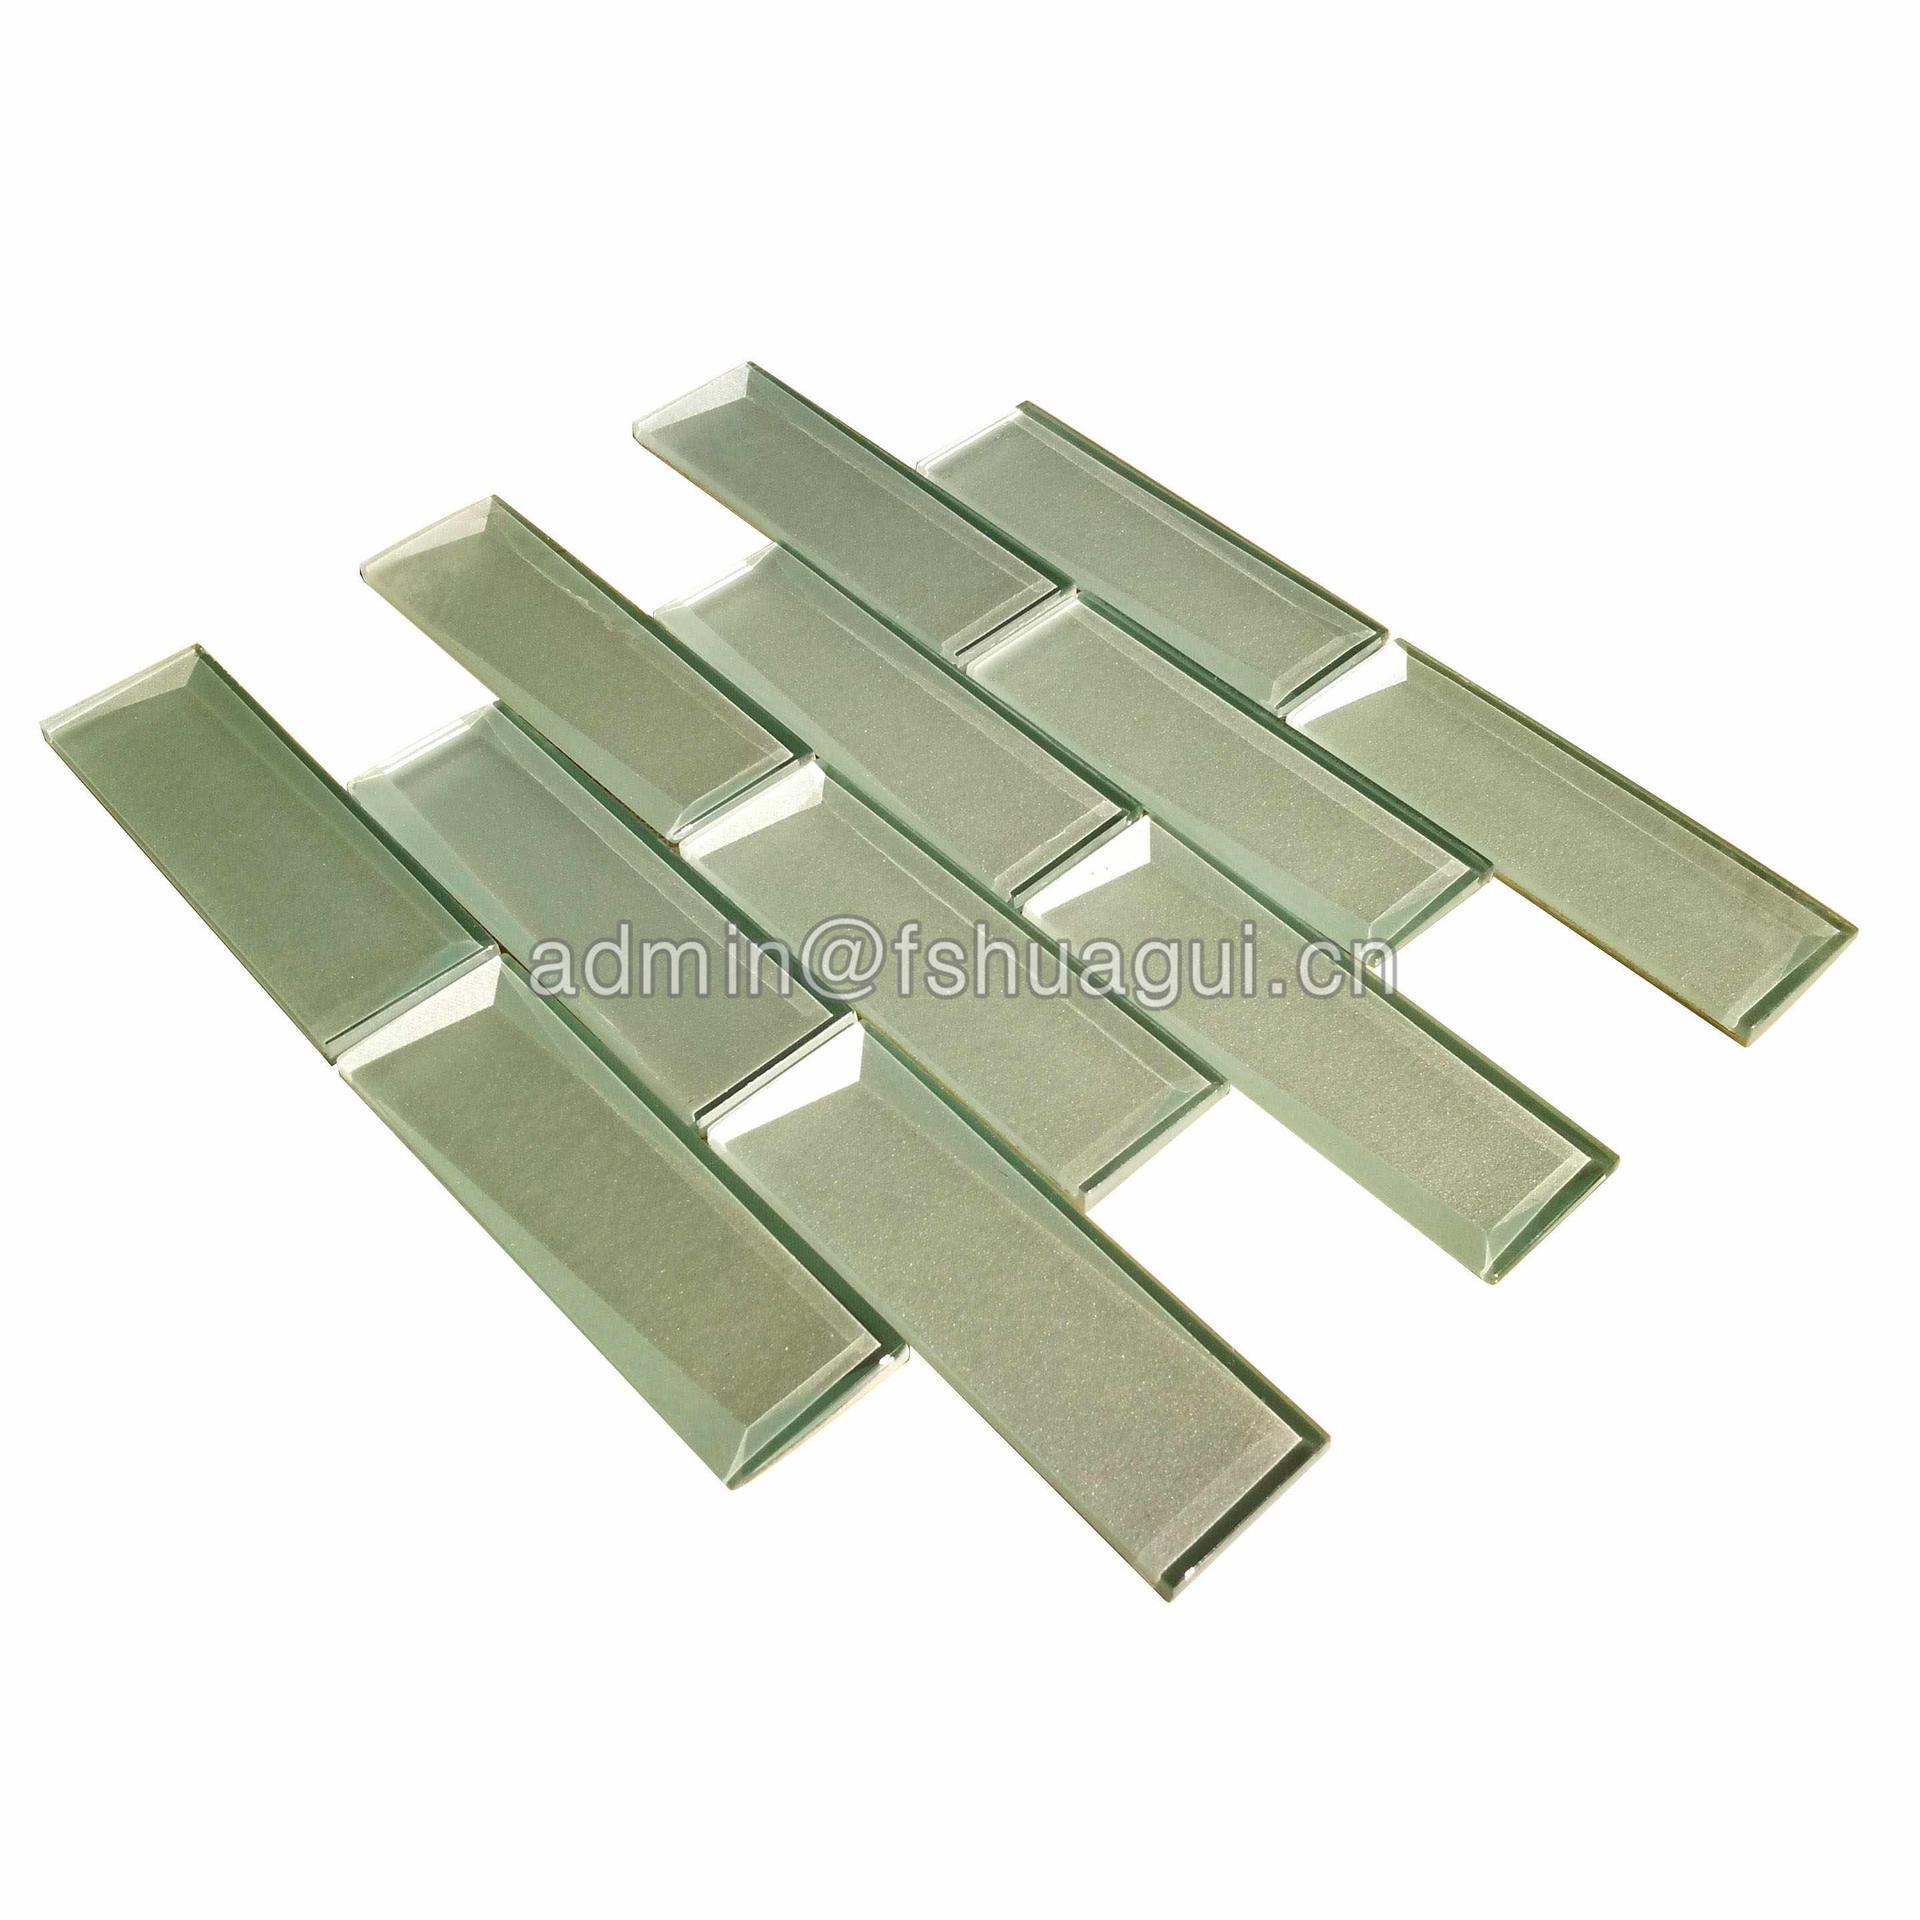 Pure Color Glass Subway Wall Mosaic Tiles HG-HB013